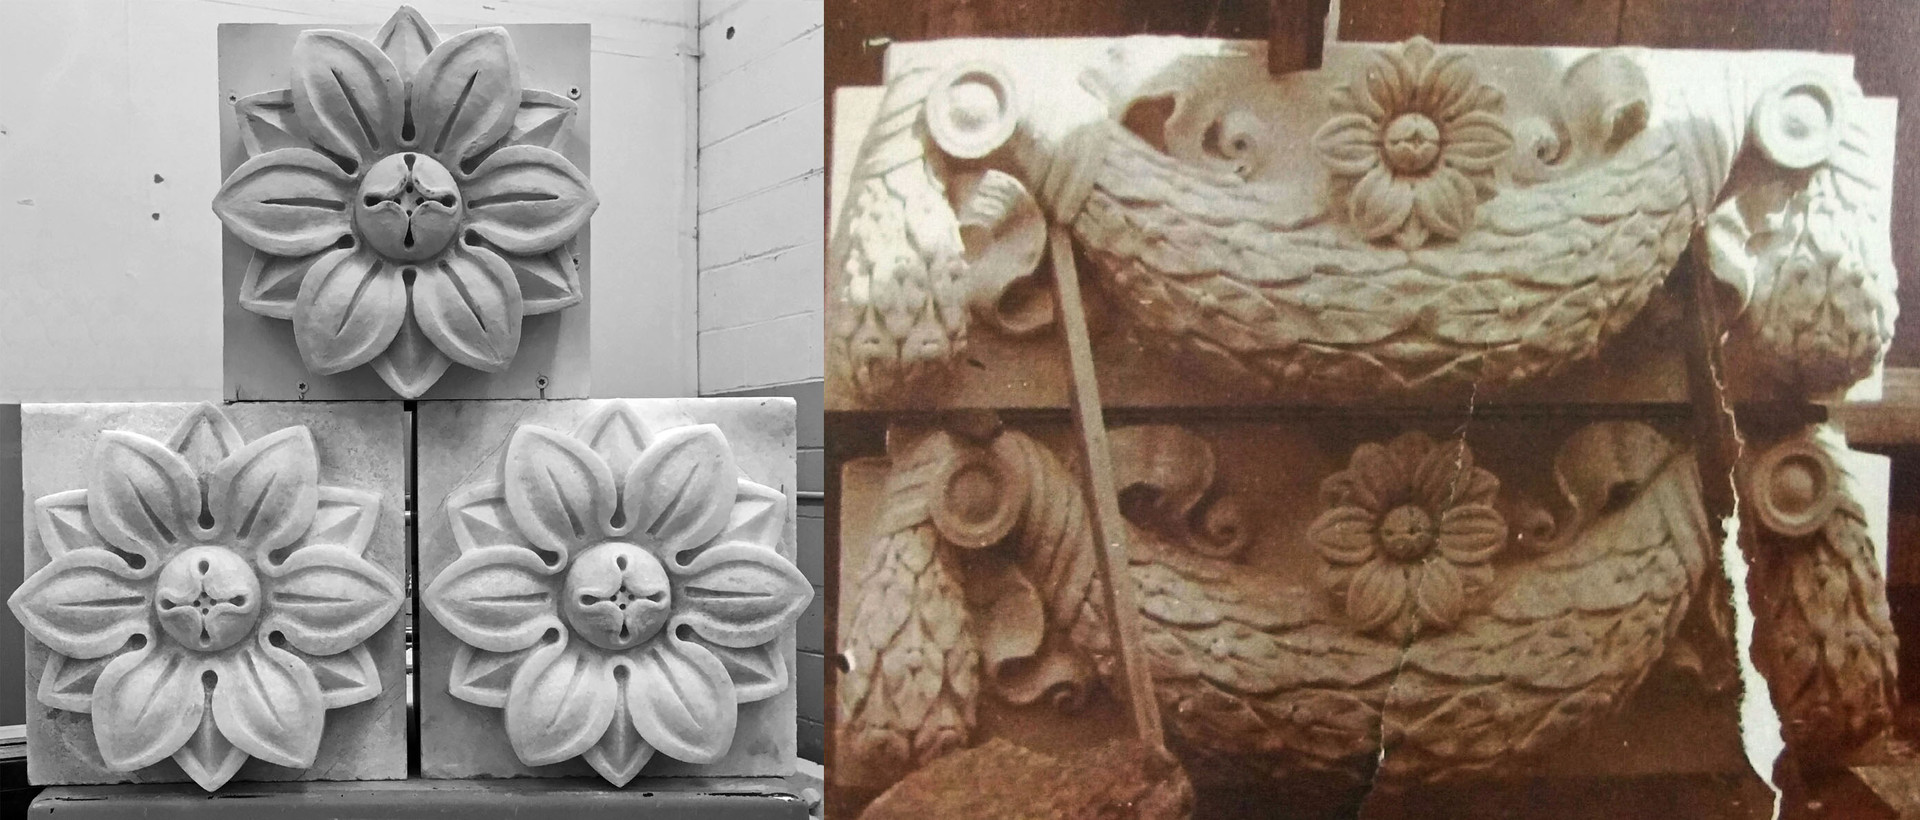 Rosette Model with Carved Rosettes